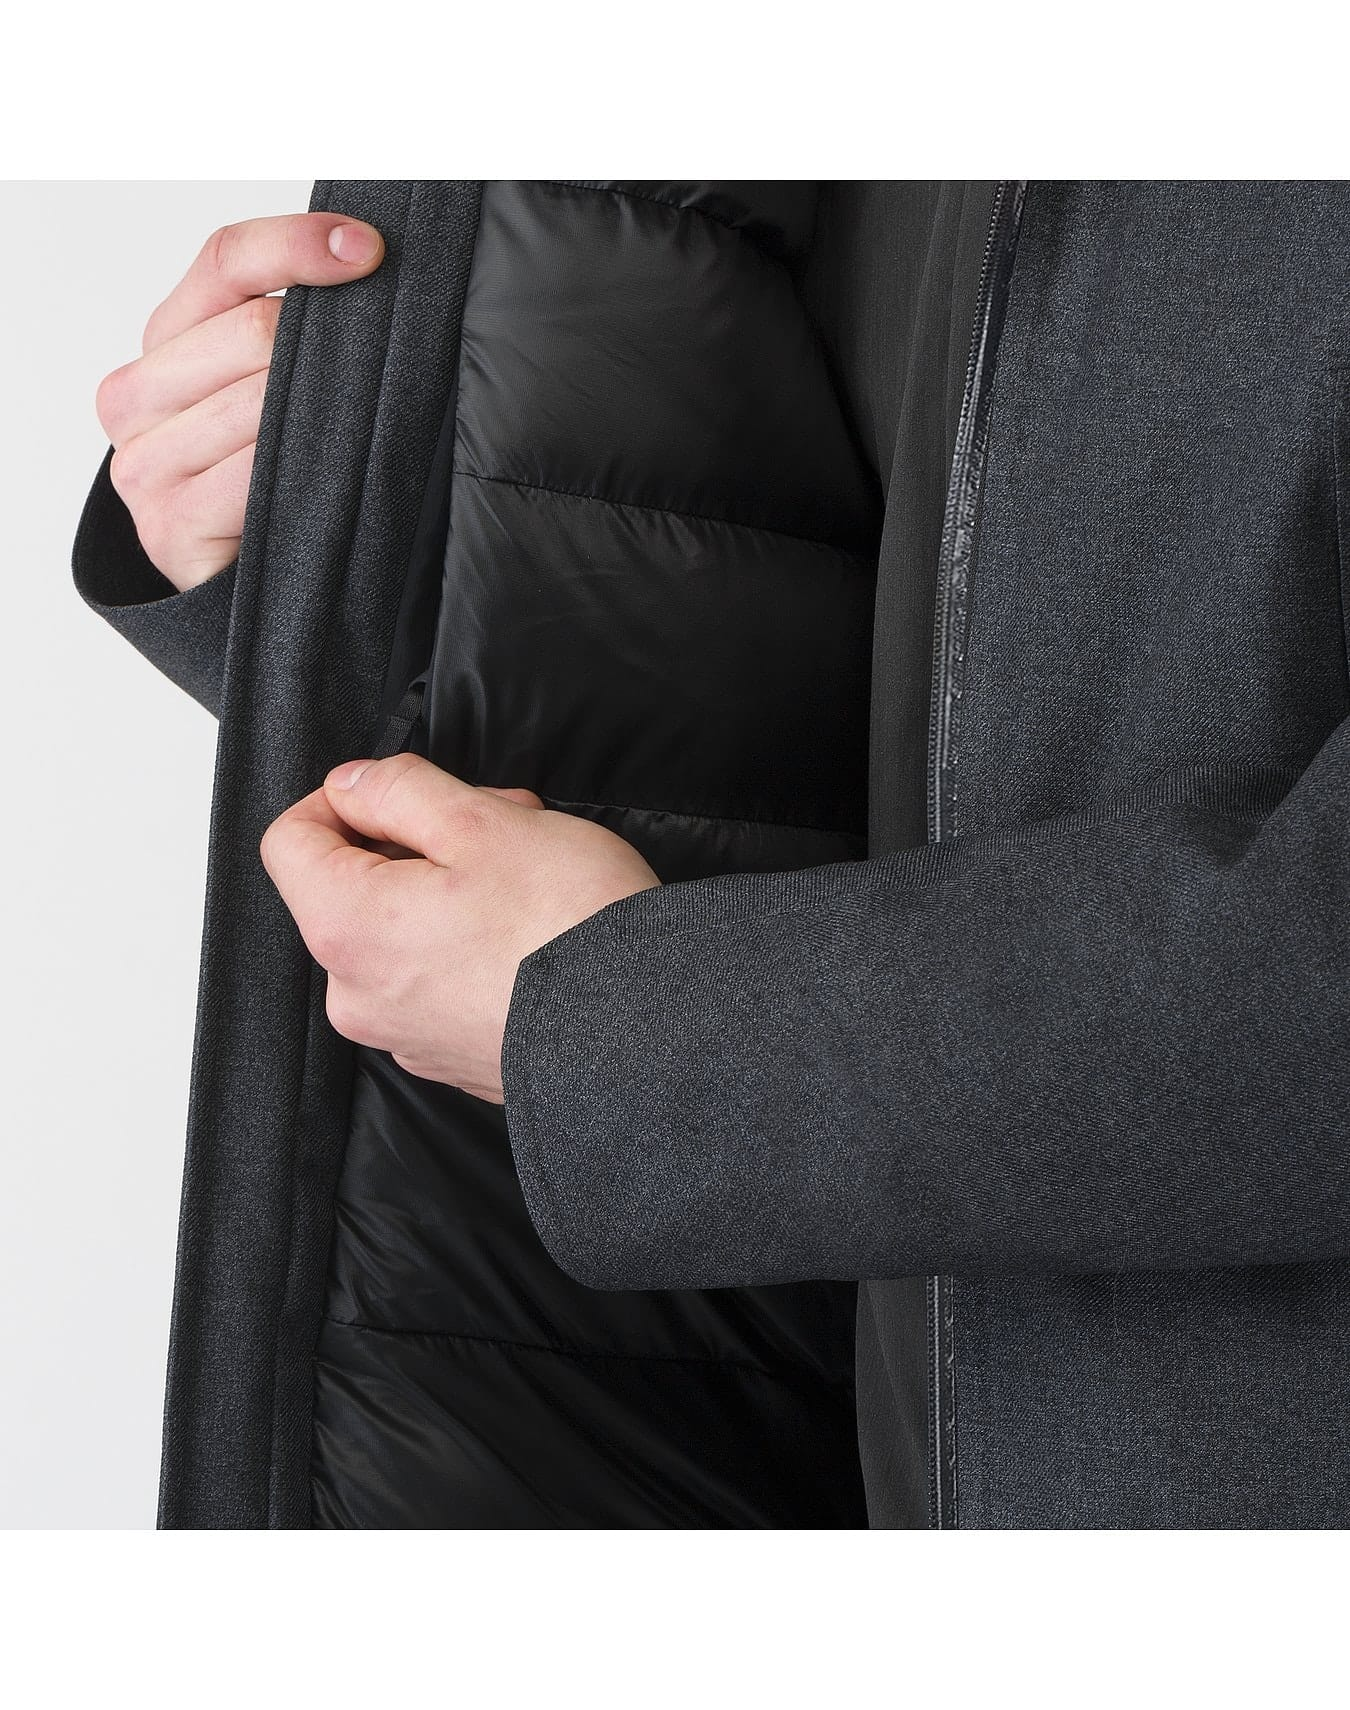 Arcteryx Veilance Monitor Down Tw Coat Haven Jaket Parka Df K94 First Introduced A Few Seasons Prior As Nyc Concept Store Exclusive Unveils Higher Production Run Of Its Proprietary Woven Twill Textile